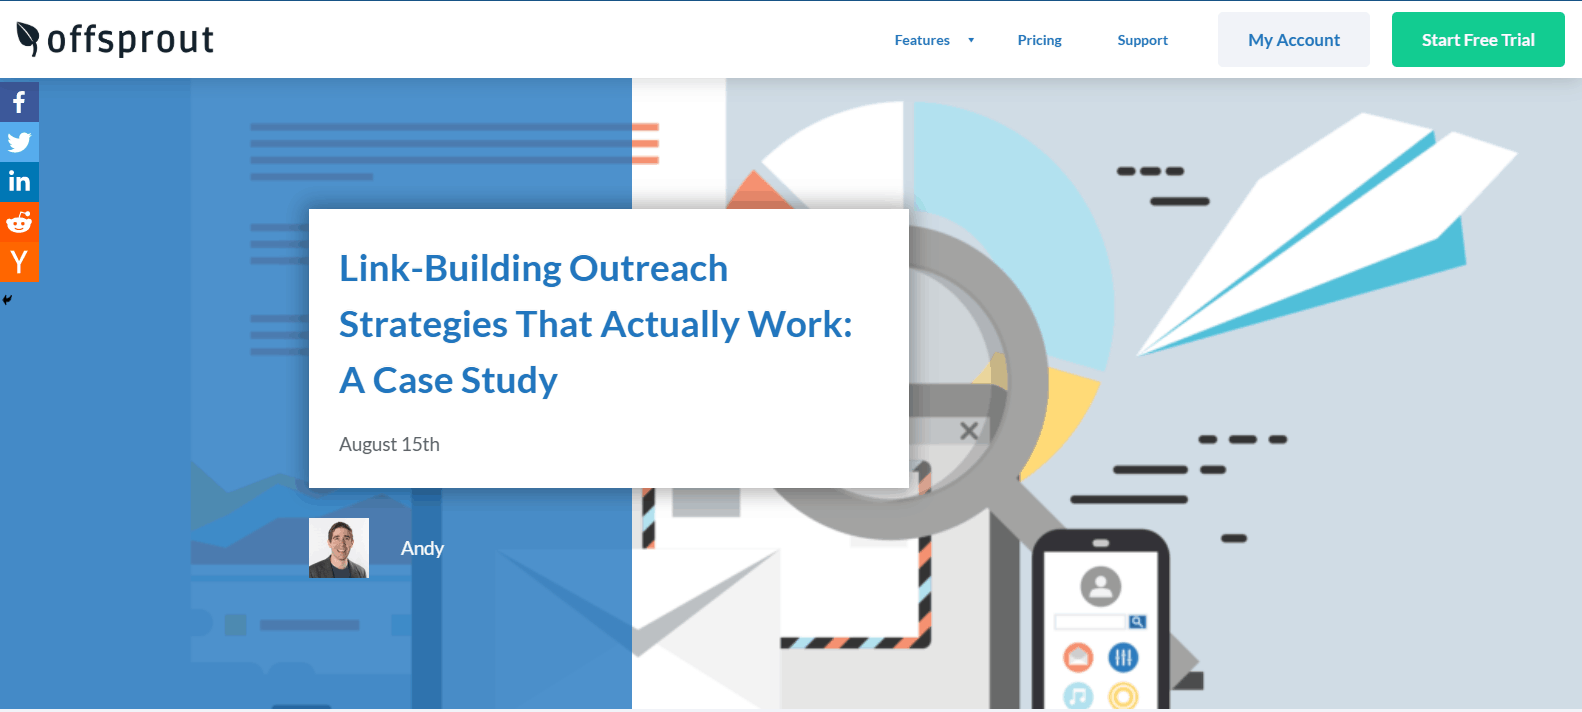 blogger outreach - outreach examples - offsprout